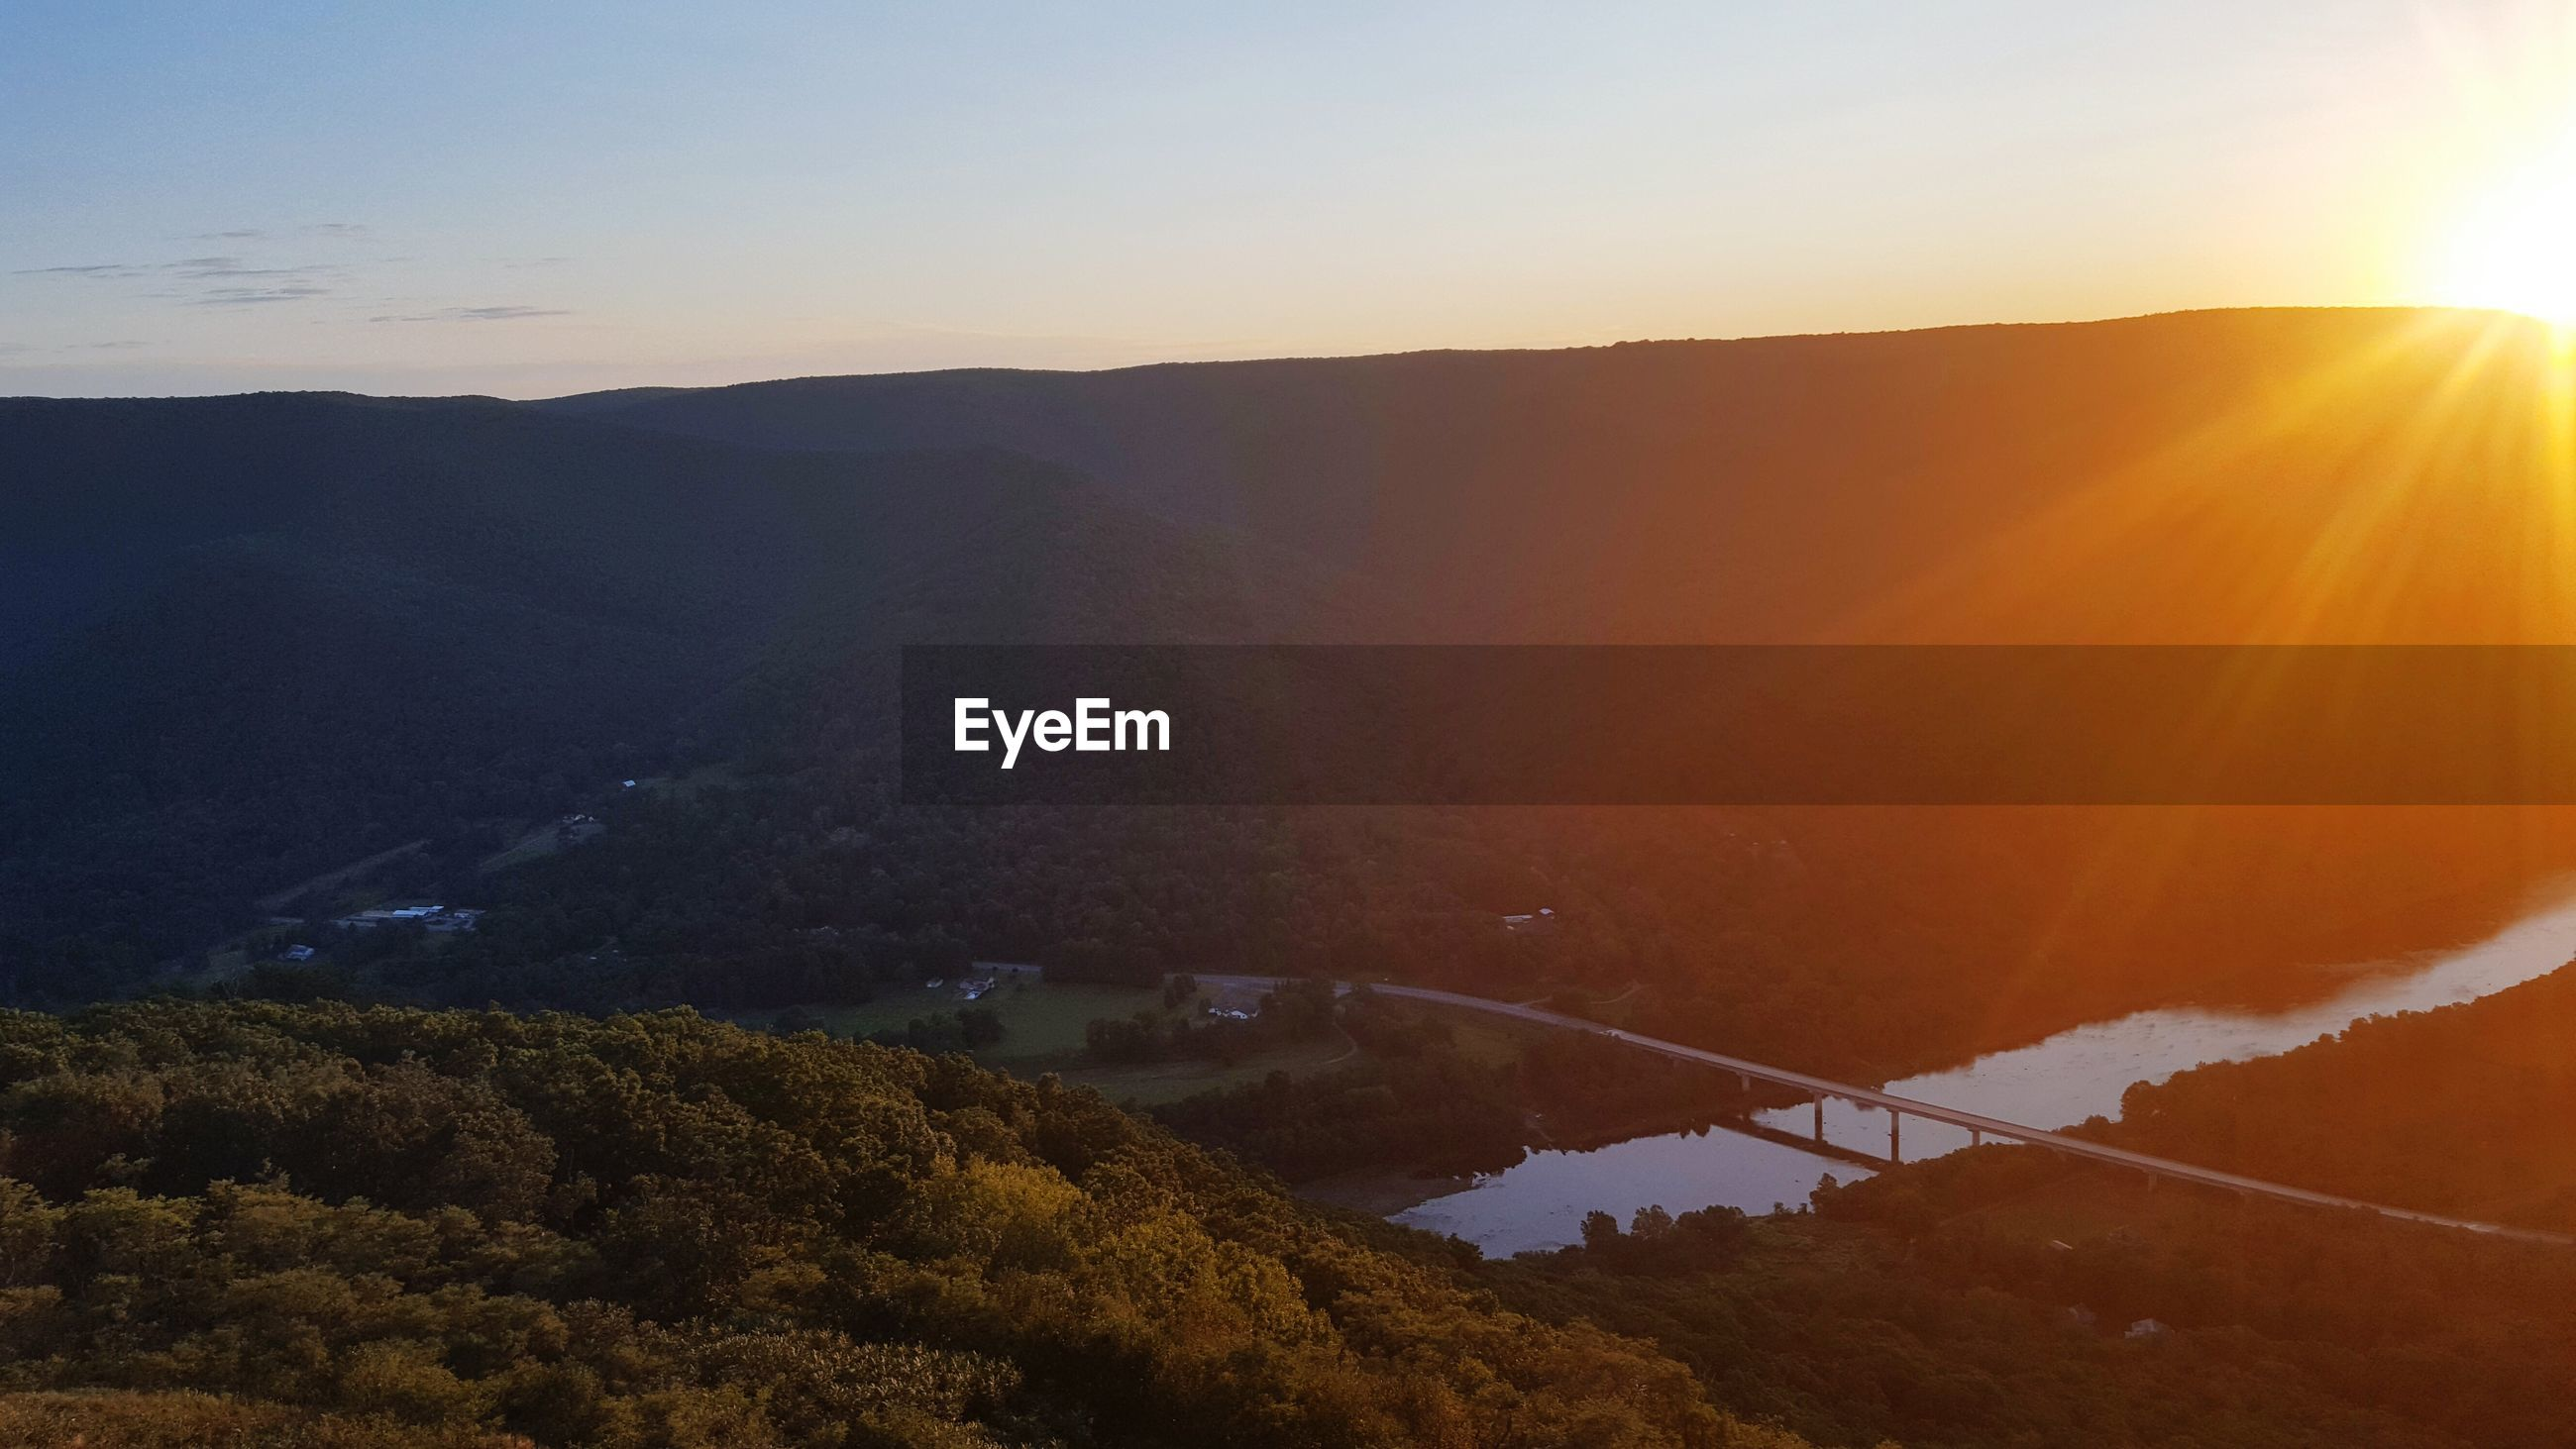 HIGH ANGLE VIEW OF SUNSET OVER MOUNTAIN